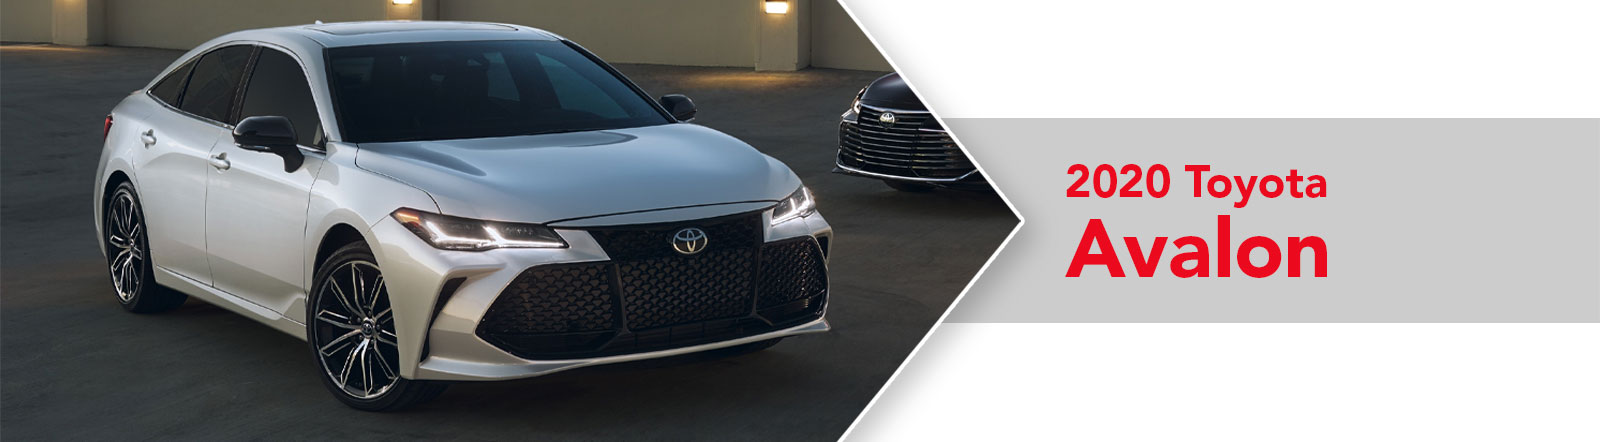 All-New 2020 Toyota Avalon For Sale in Metairie, LA